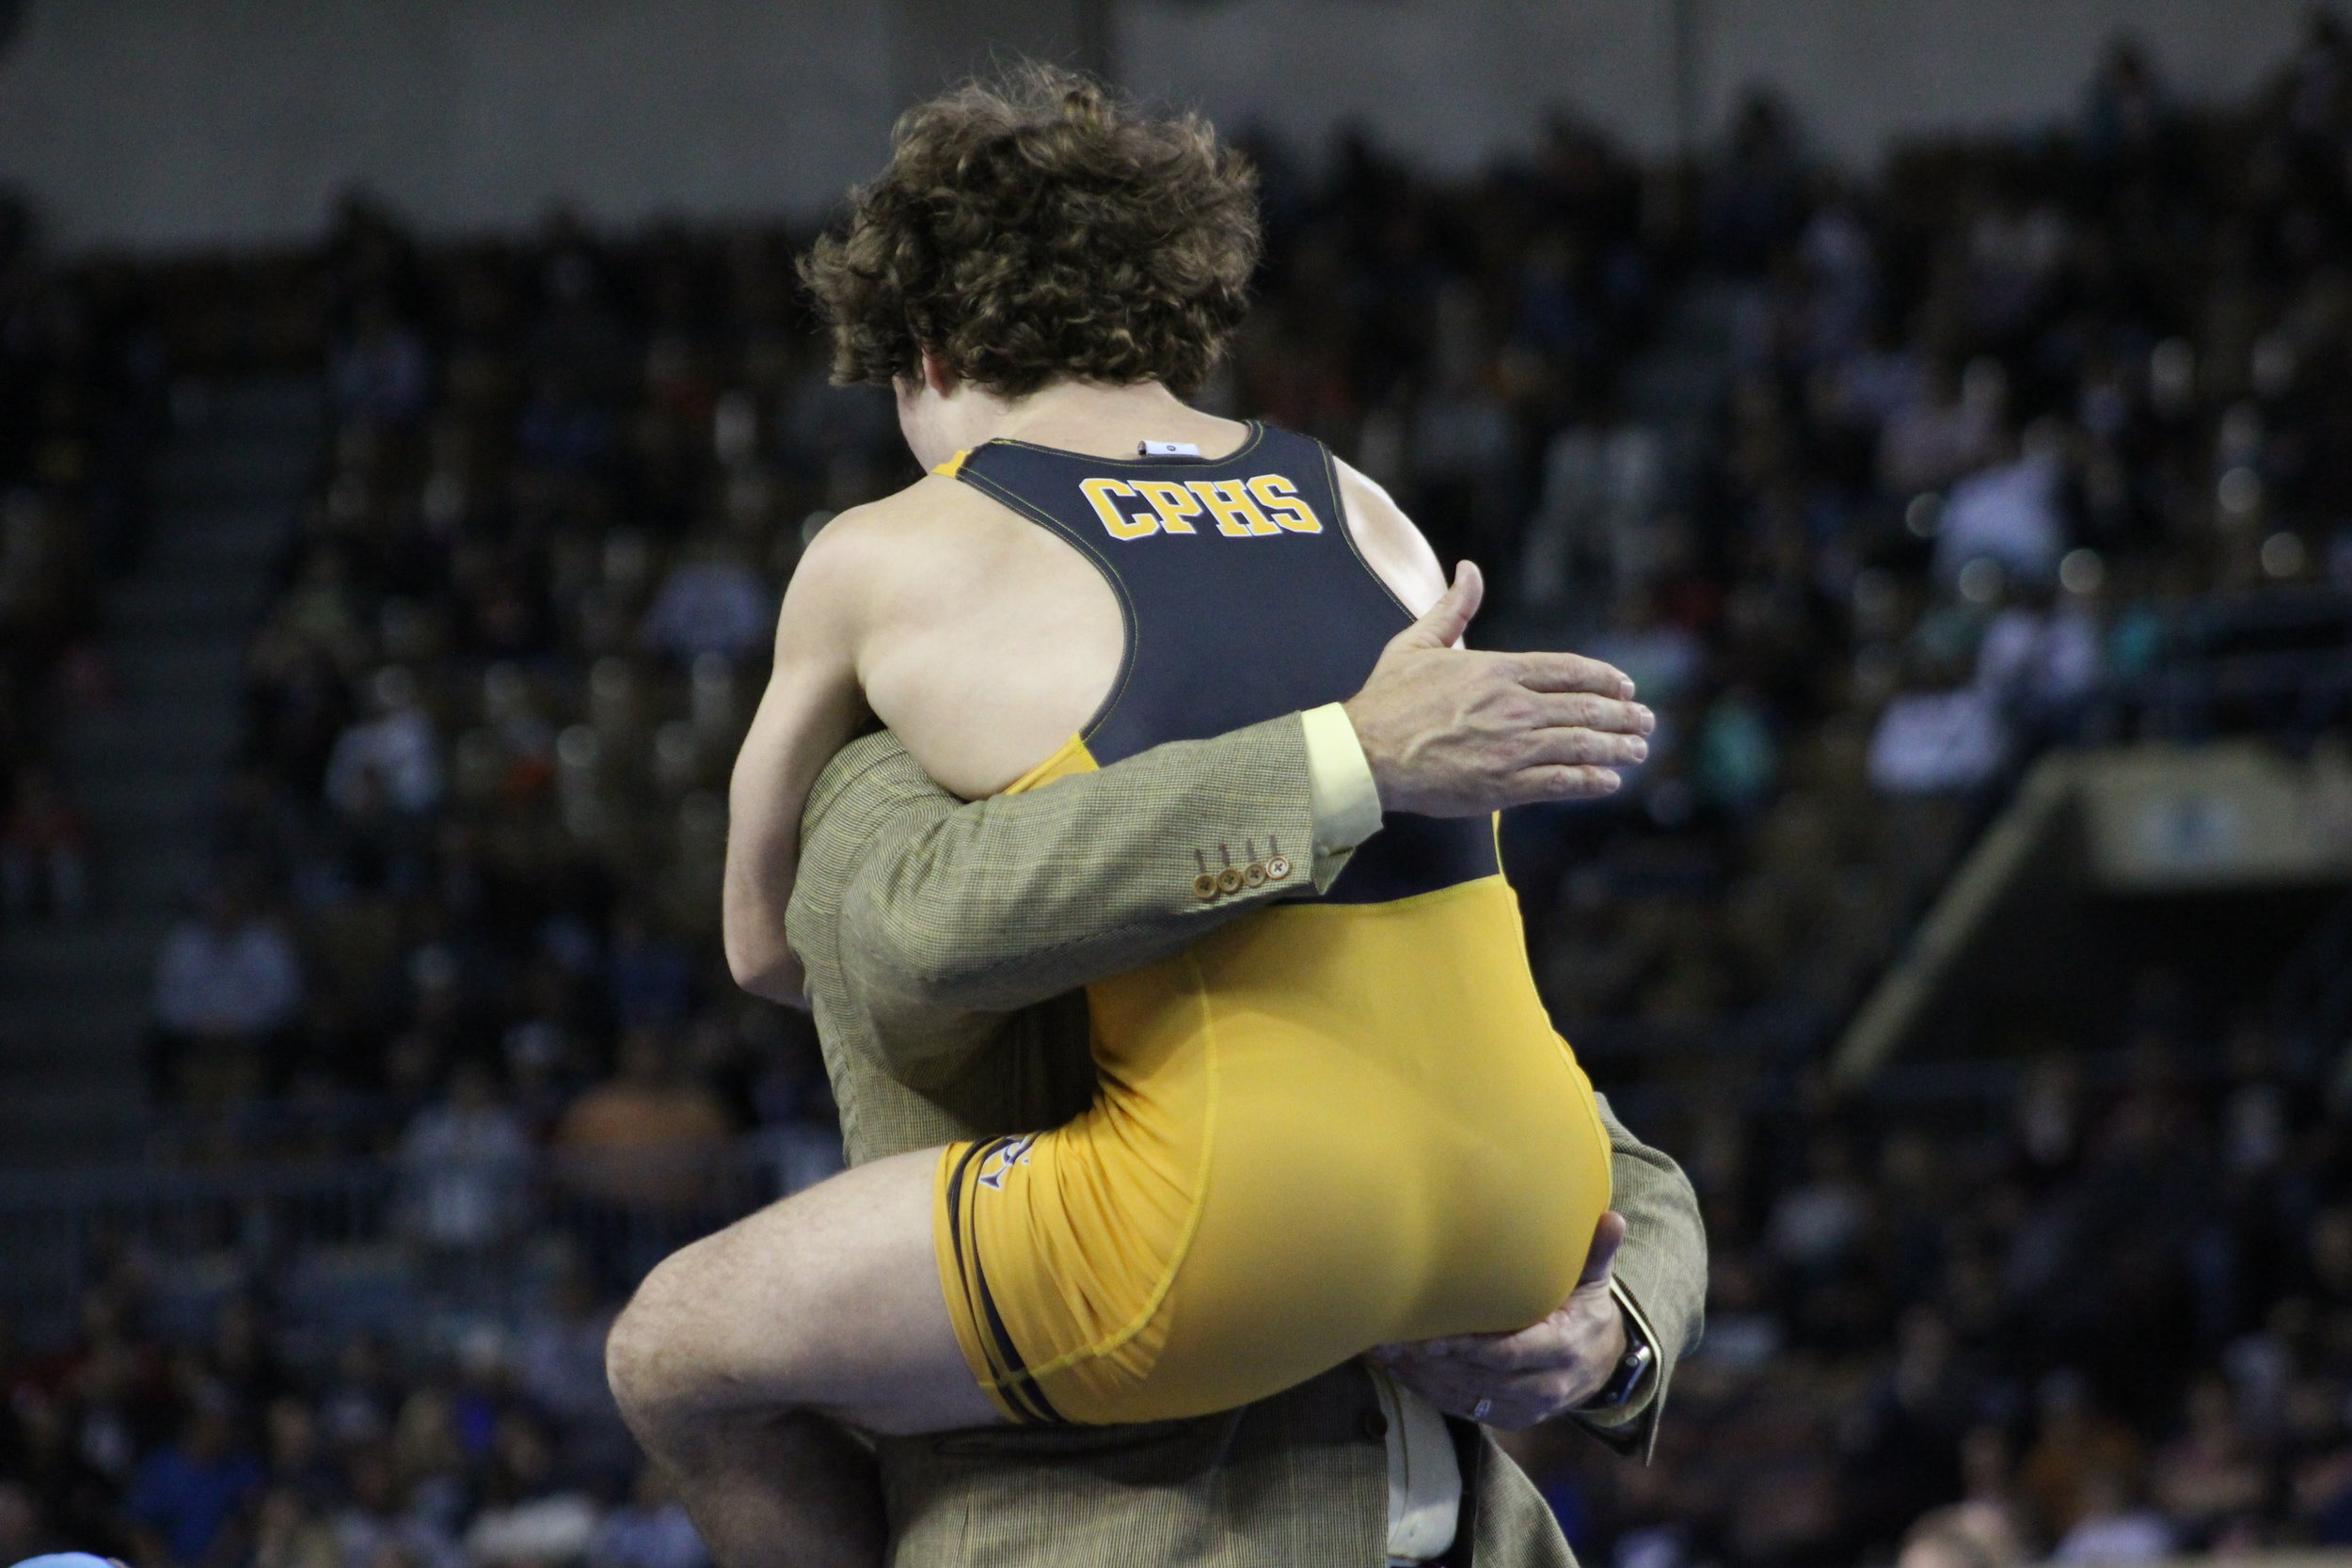 Daton Fix leaped into his father's arms after winning his fourth State title.